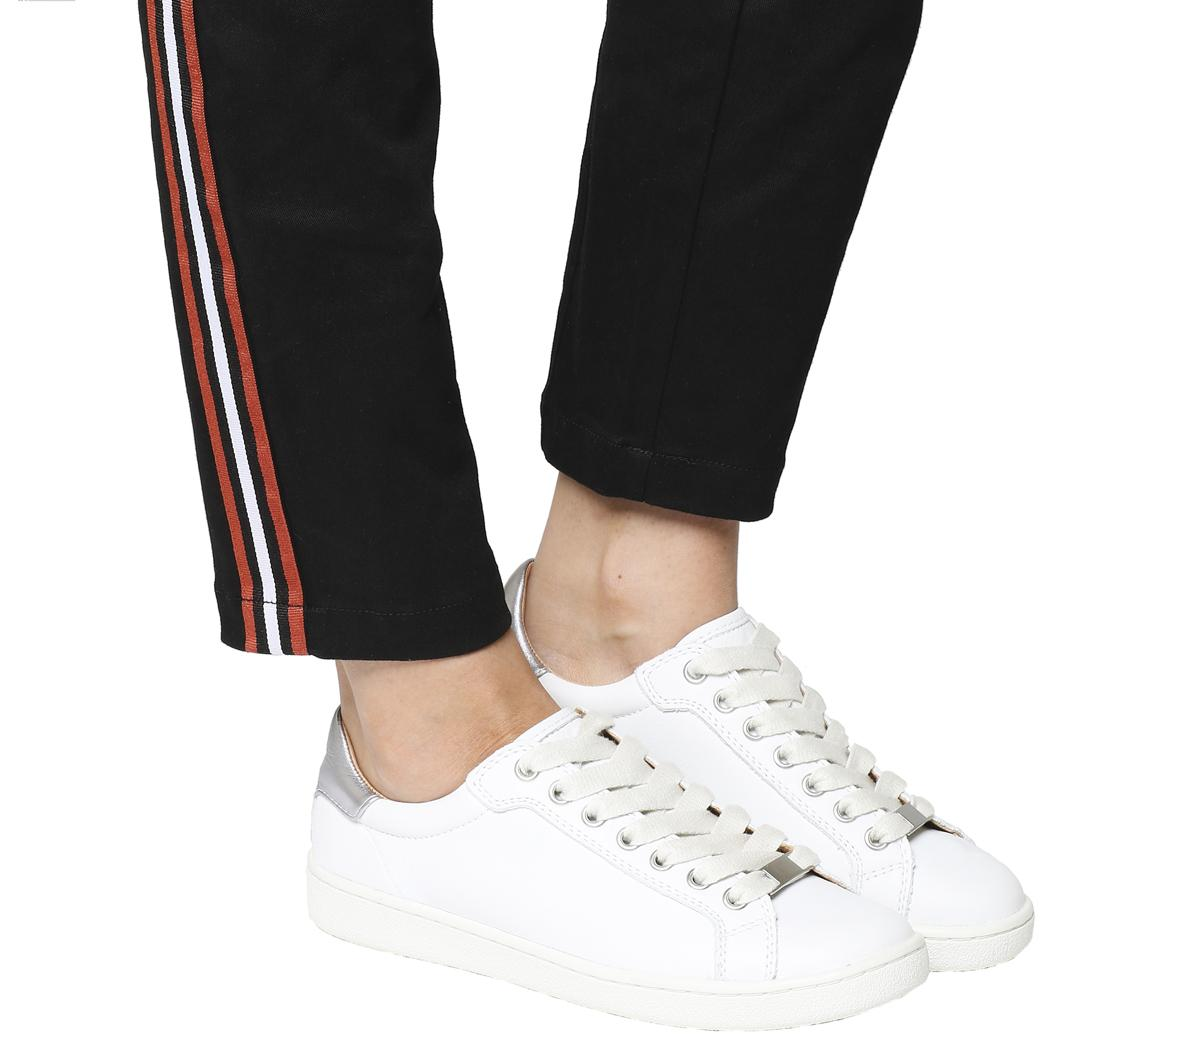 UGG Milo Sneakers White Leather - Hers